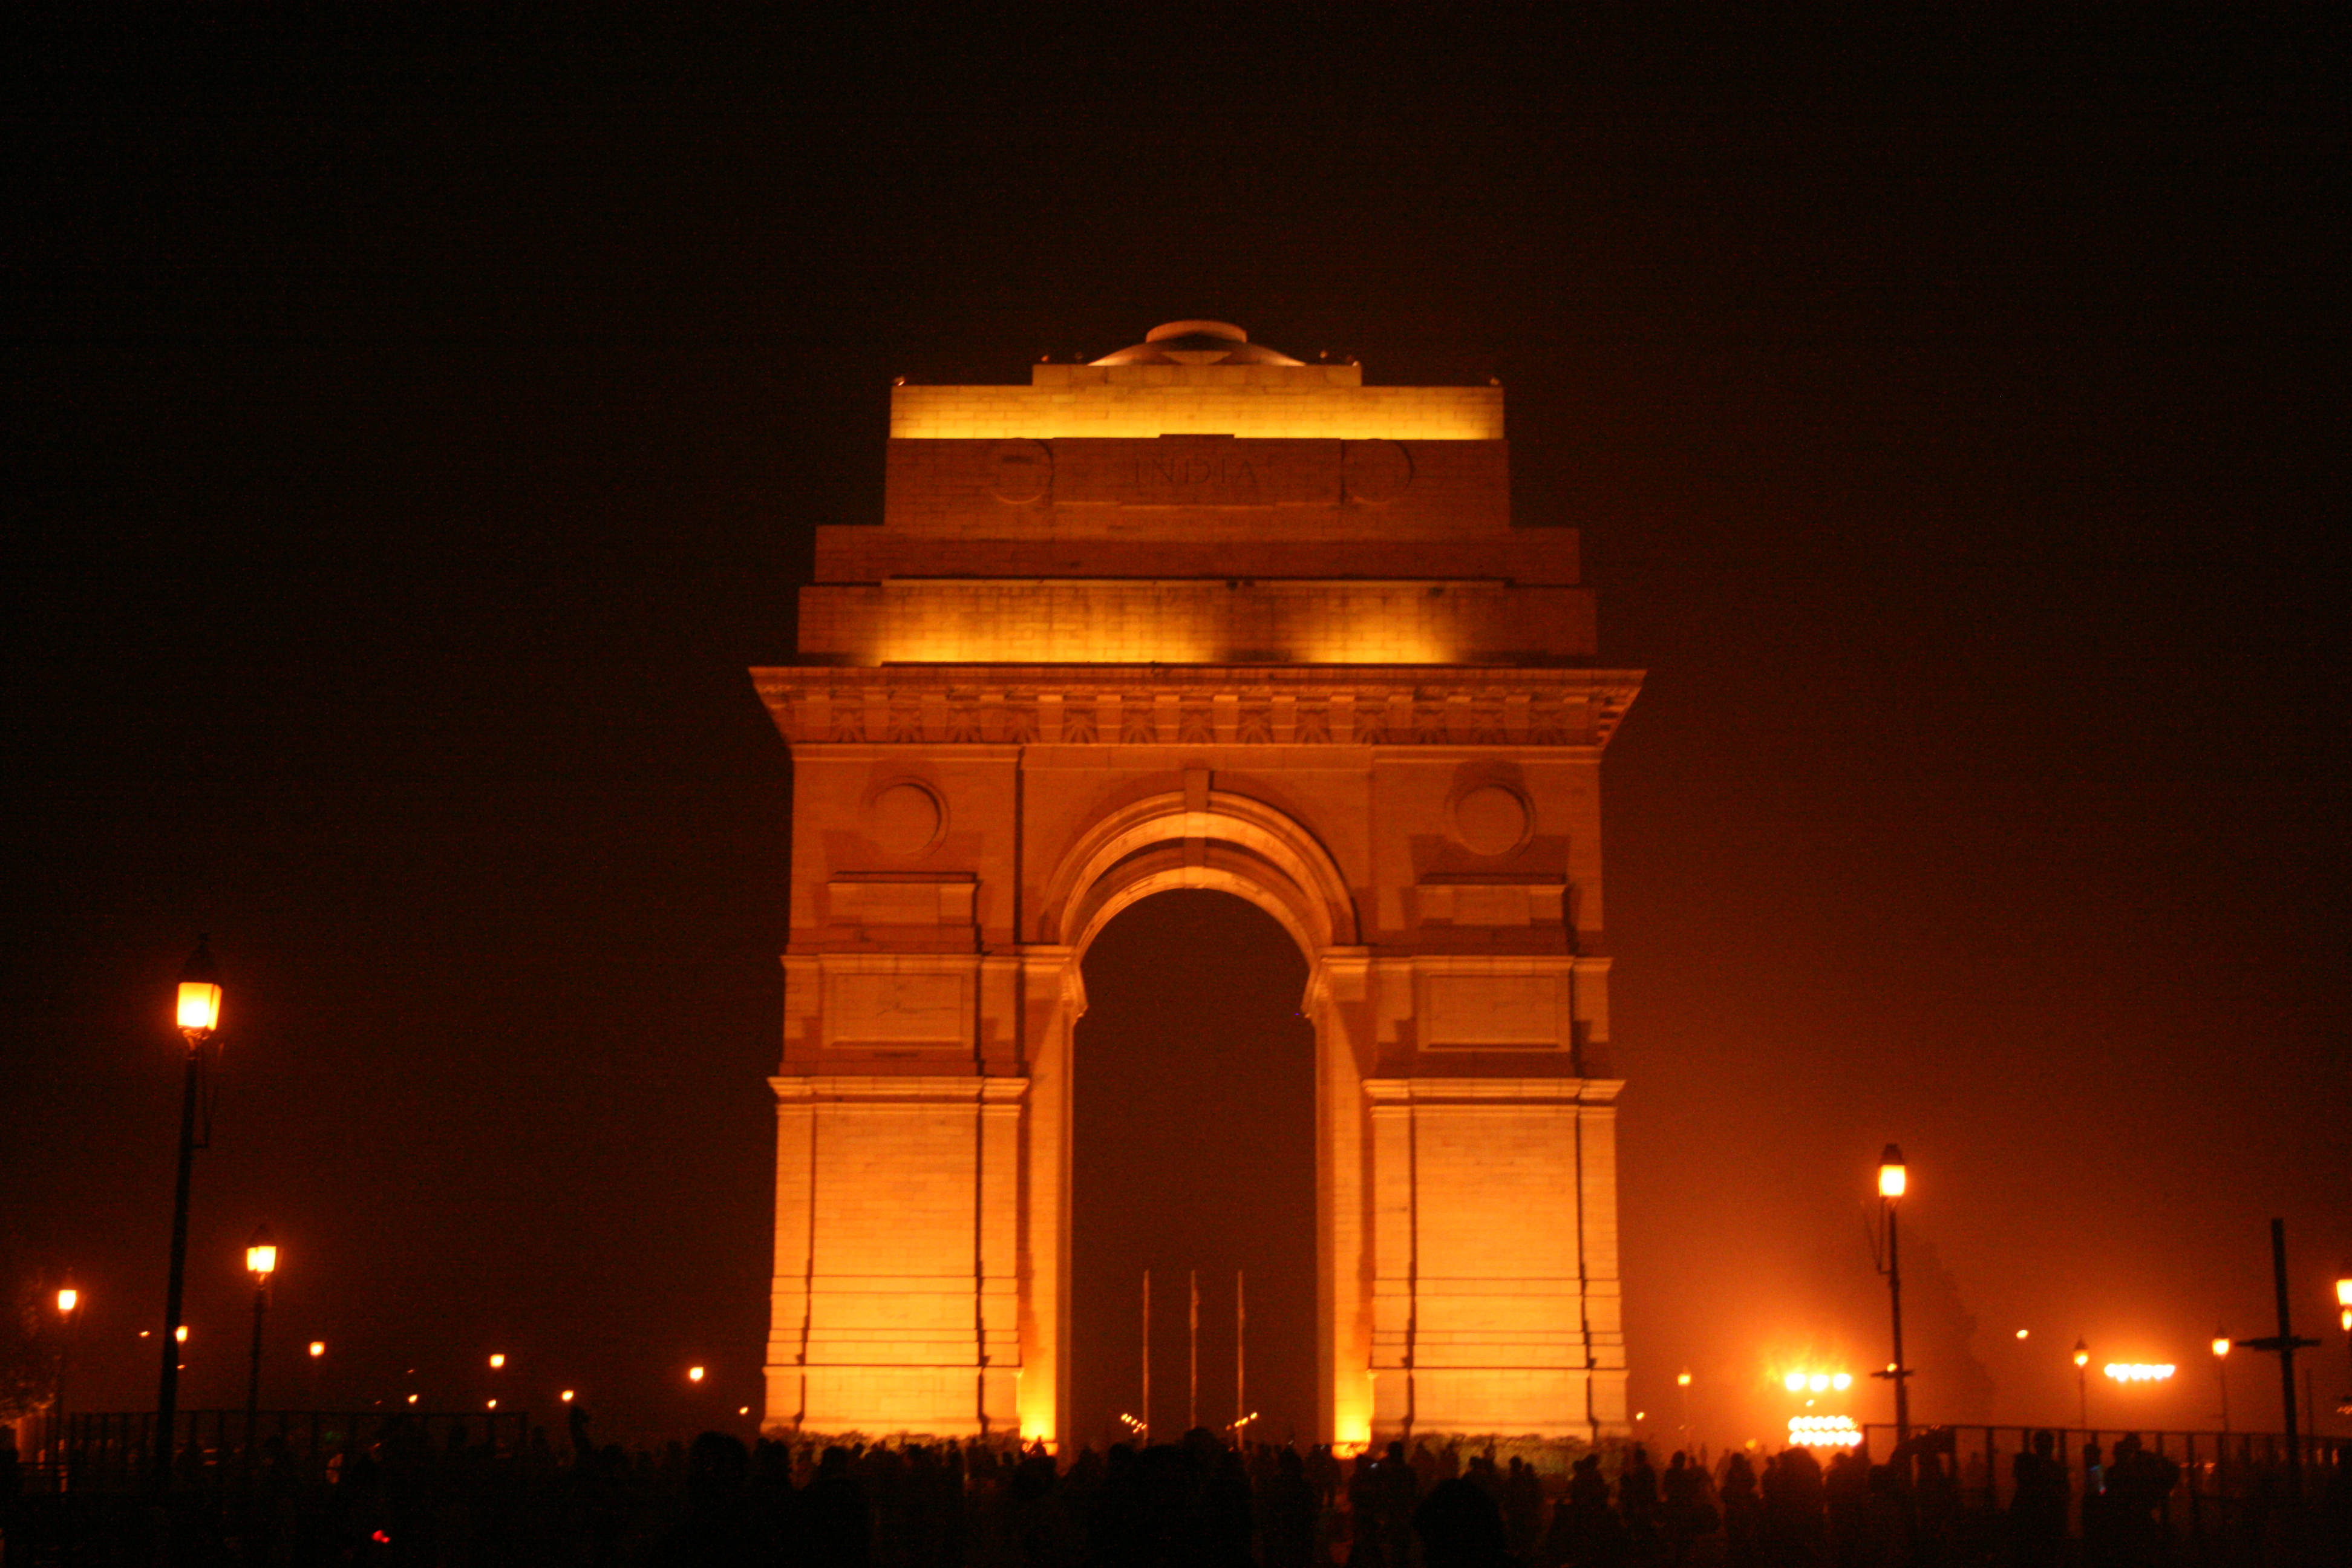 India wallpaper 2013 india gate wallpaper india gate wallpaper altavistaventures Choice Image